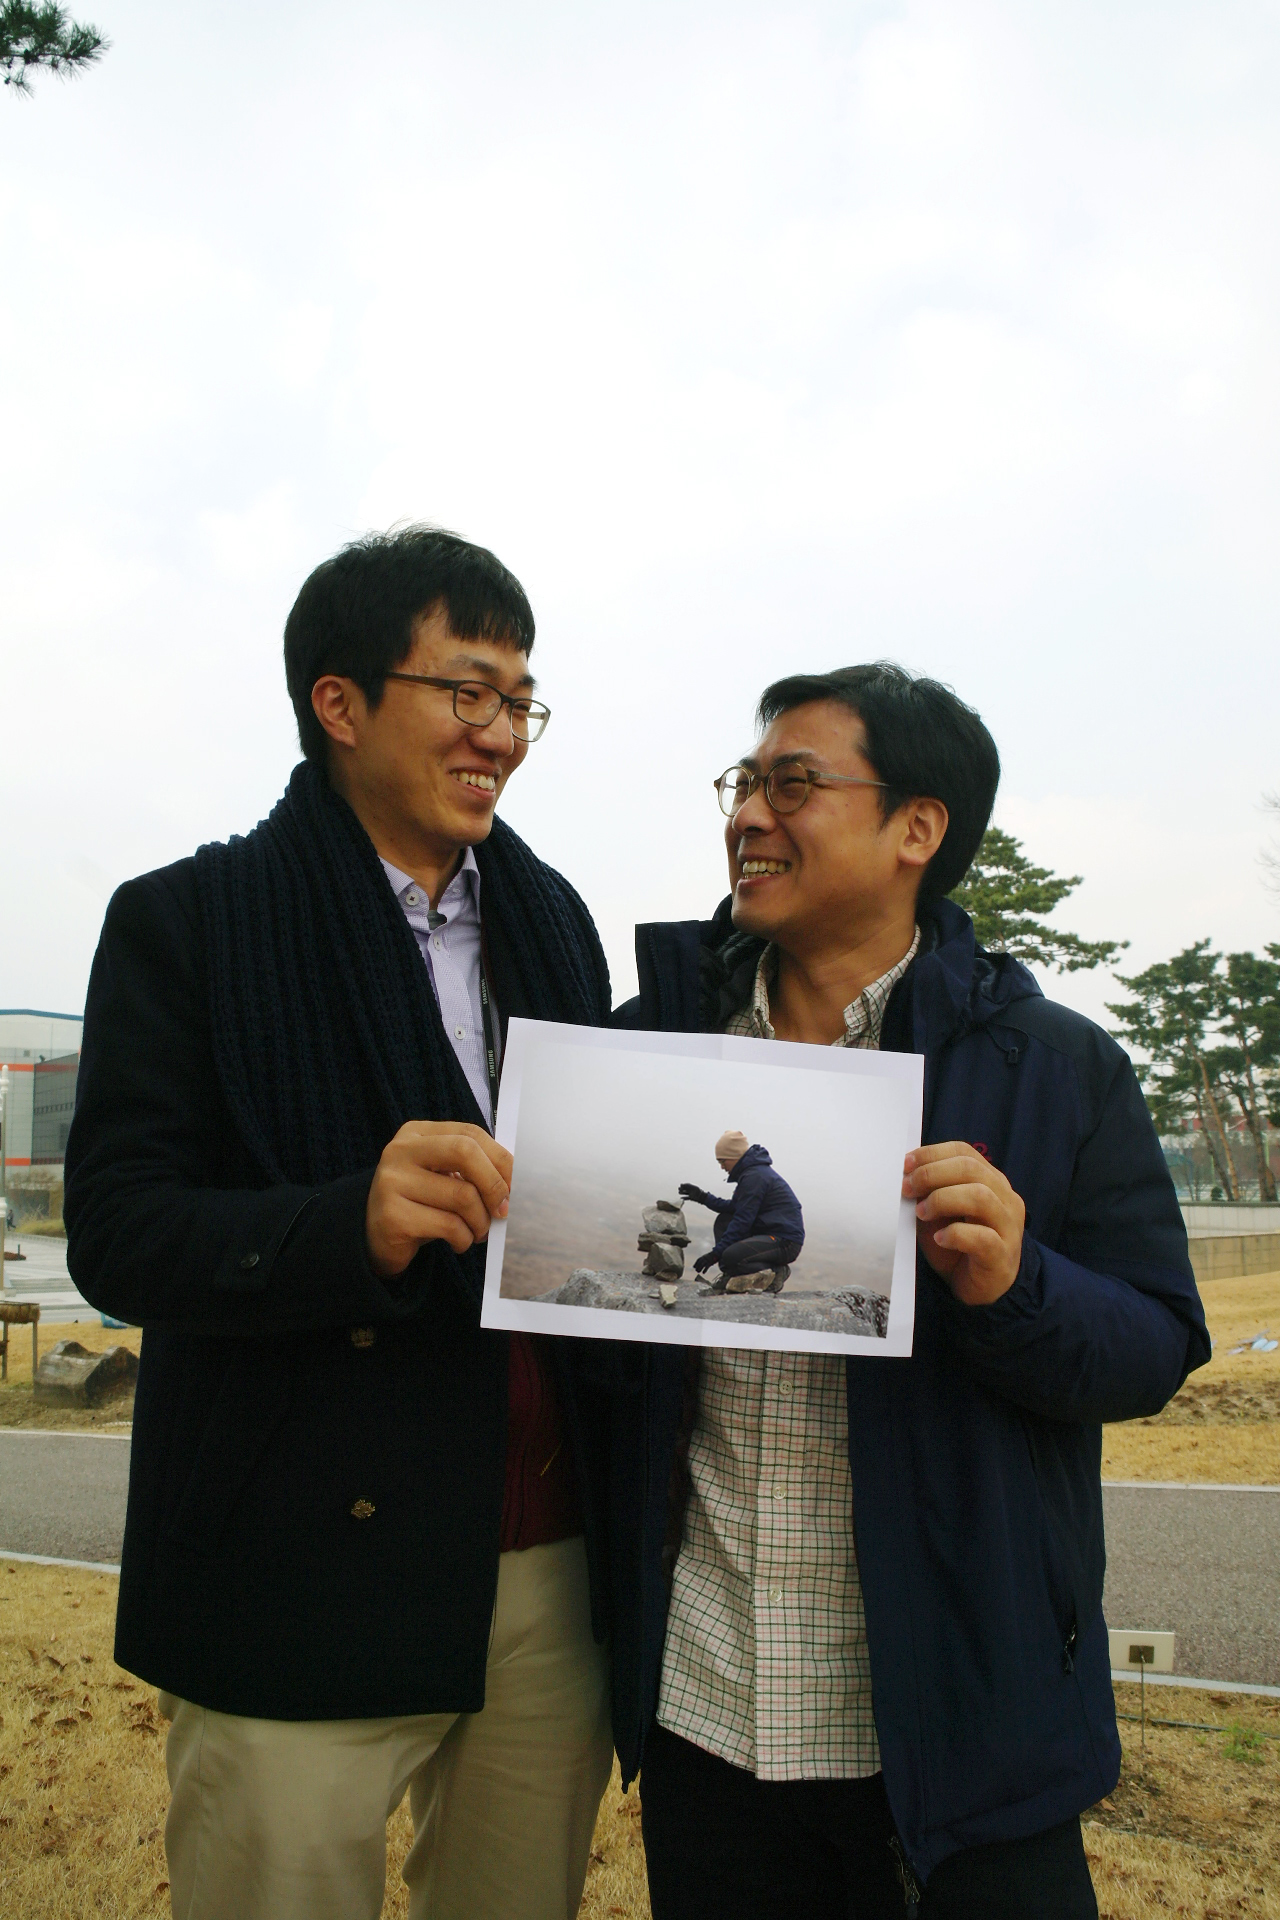 Songbaik Jin from the C-Lab at Samsung Printing Solution and Sangwook Cho from the Power Device Development Team at System LSI Samsung Electronics